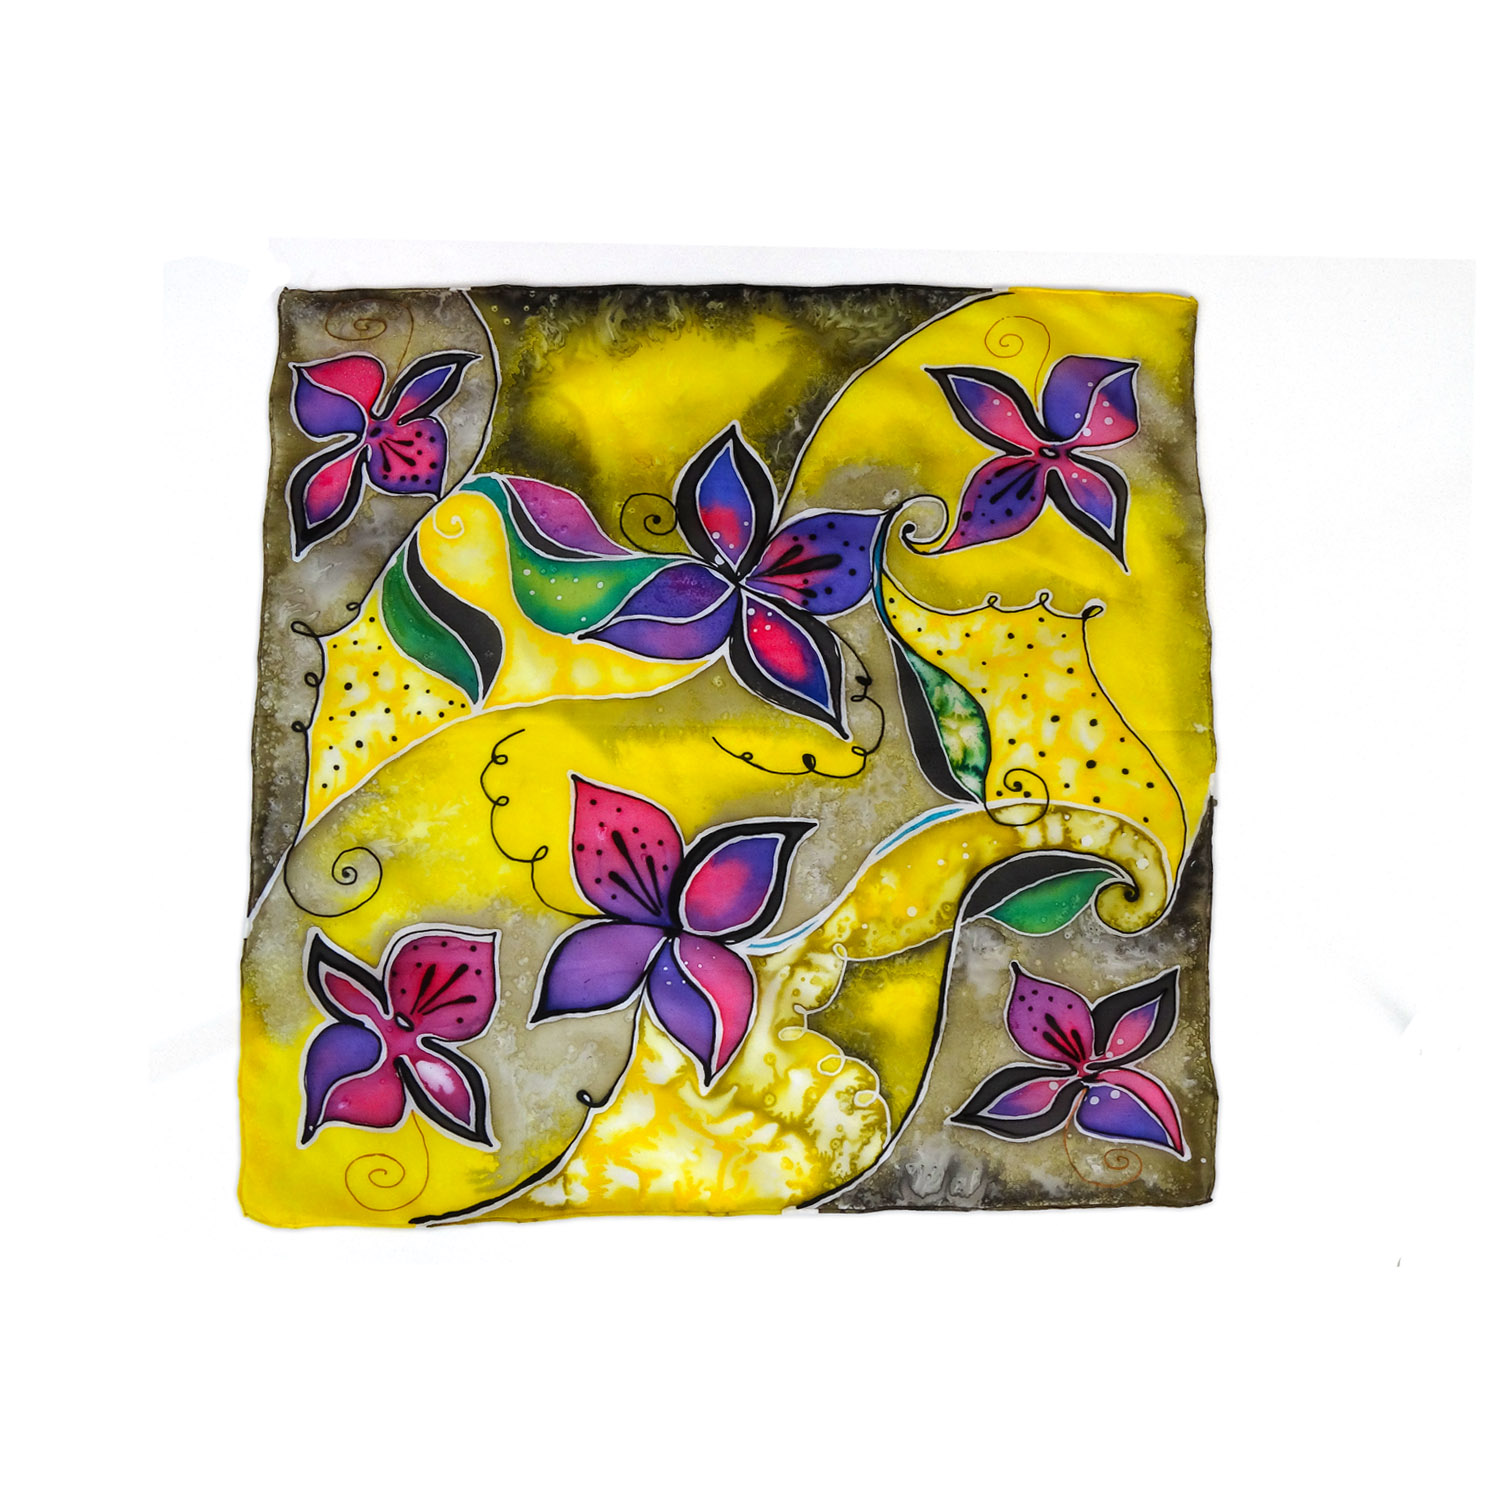 Foulard dipinto a mano – Fiori in color